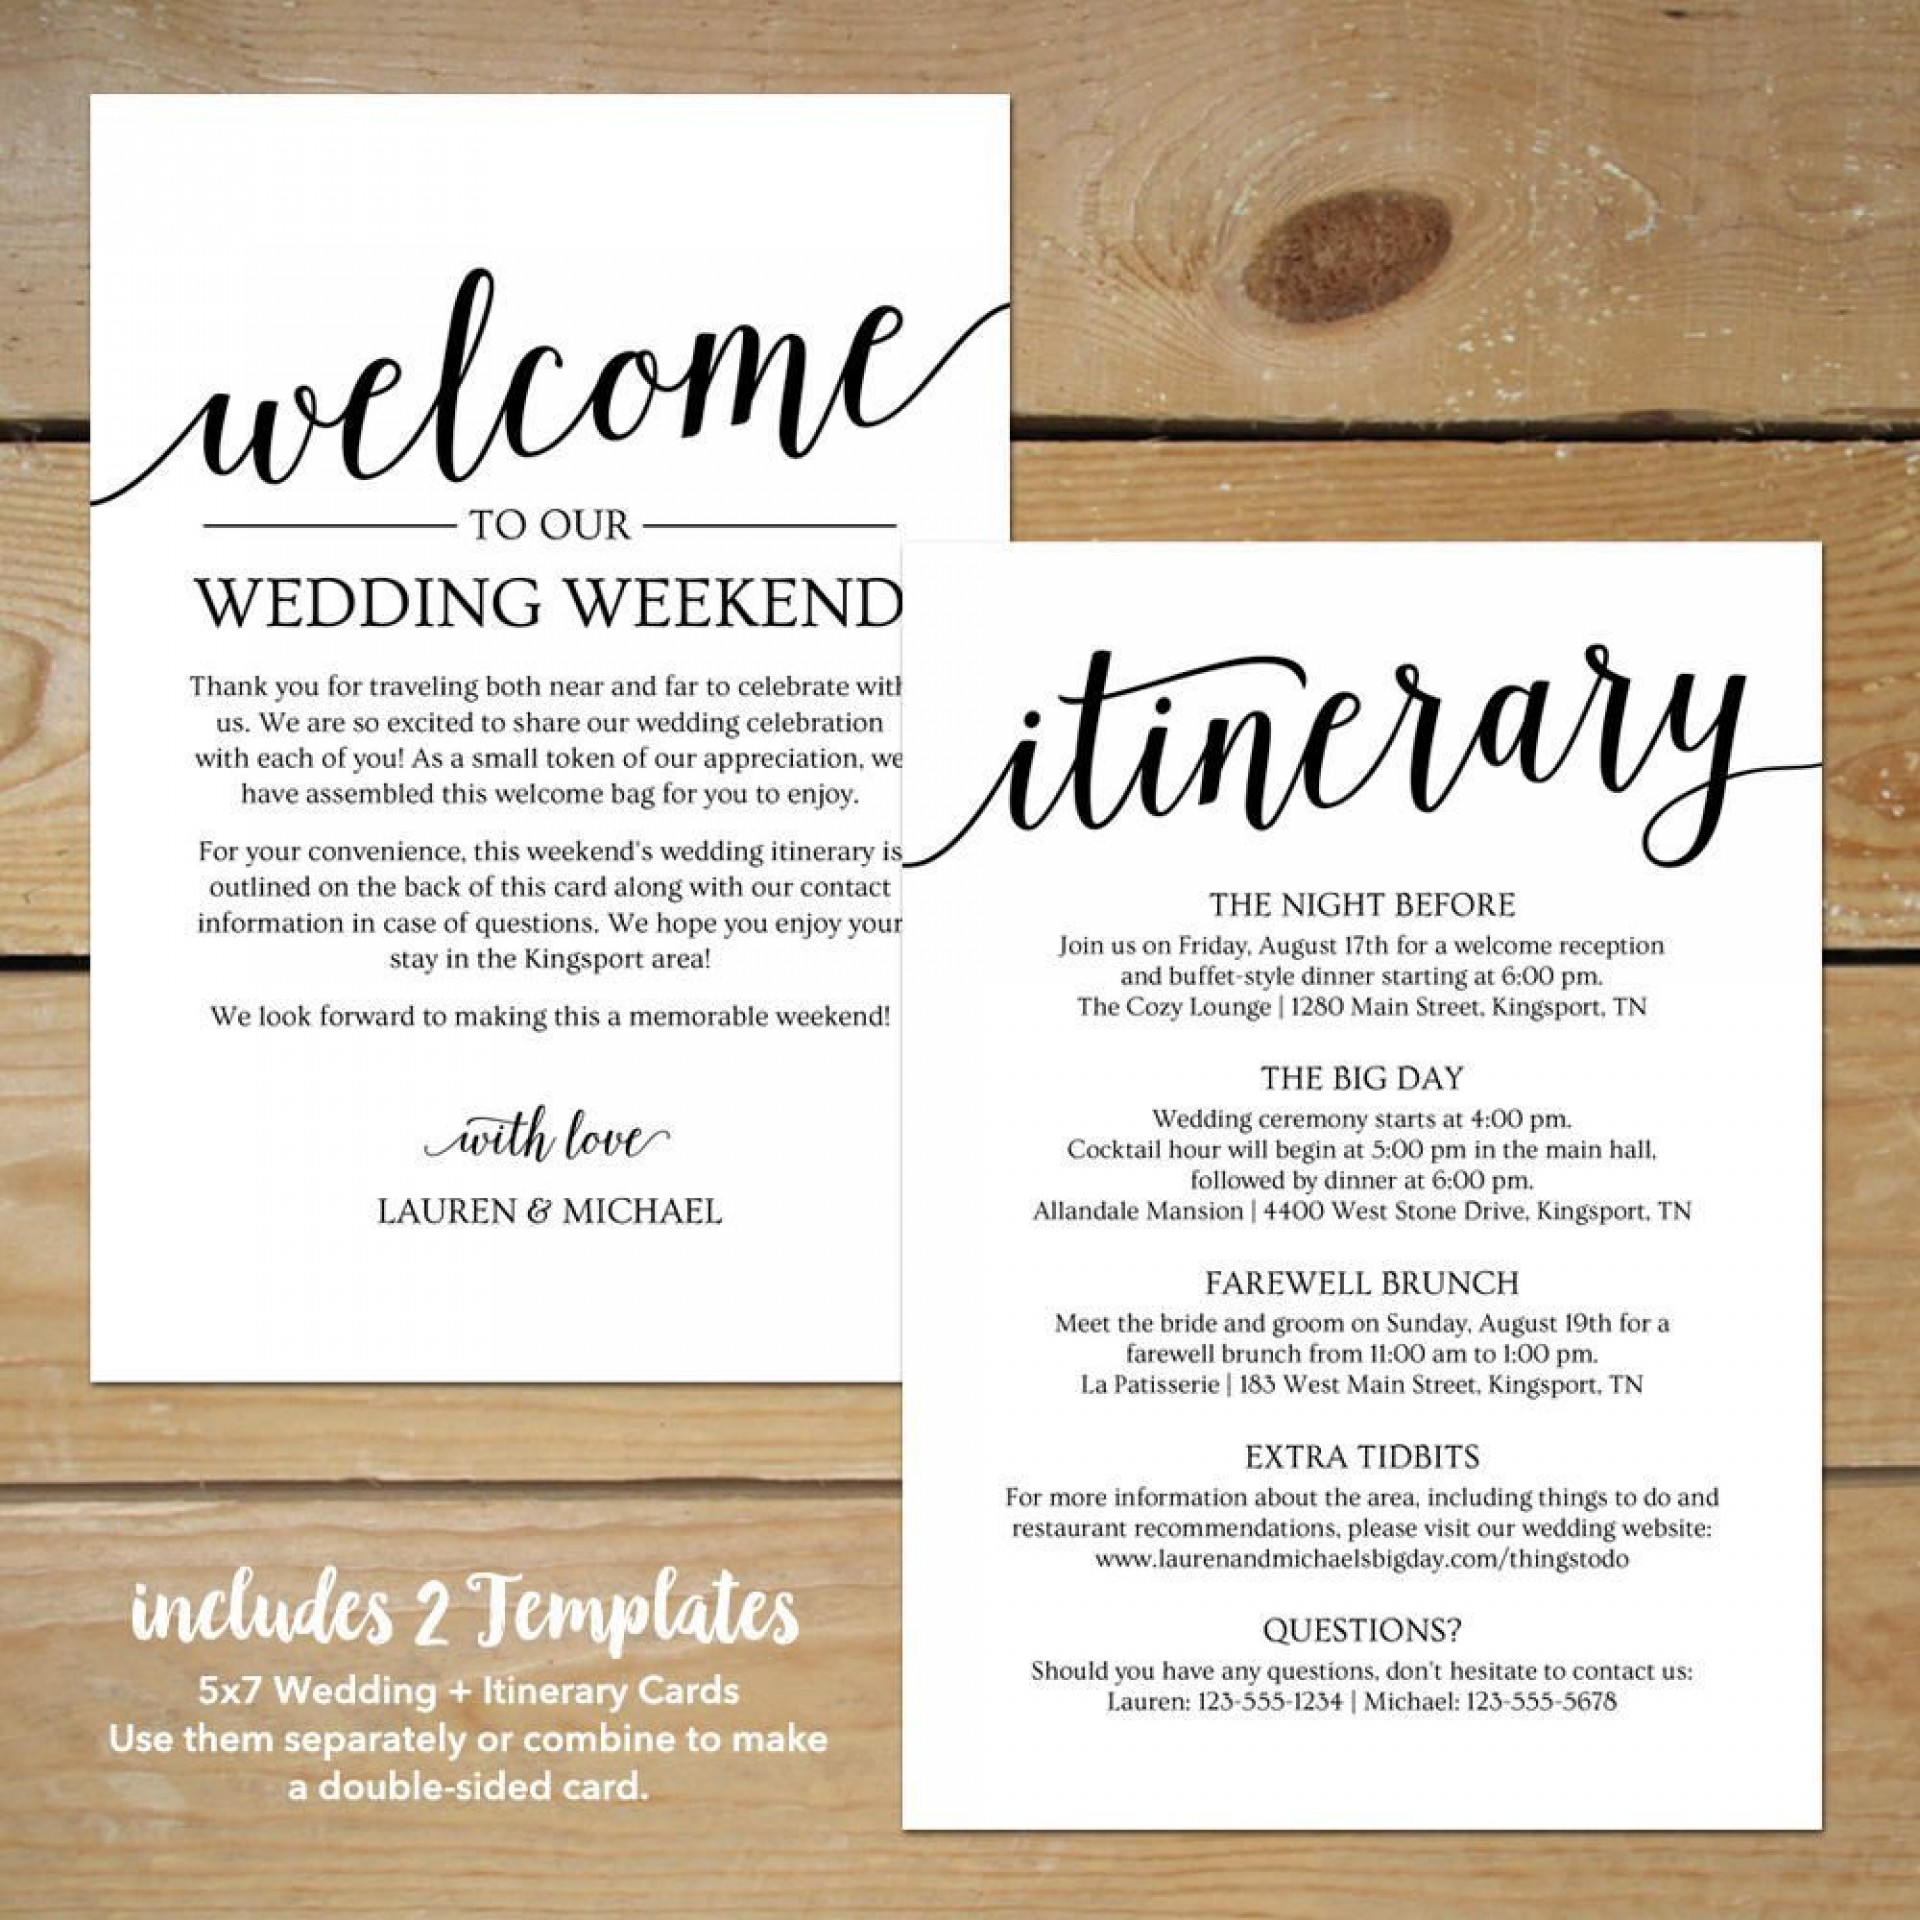 000 Archaicawful Destination Wedding Welcome Letter And Itinerary Template High Resolution 1920